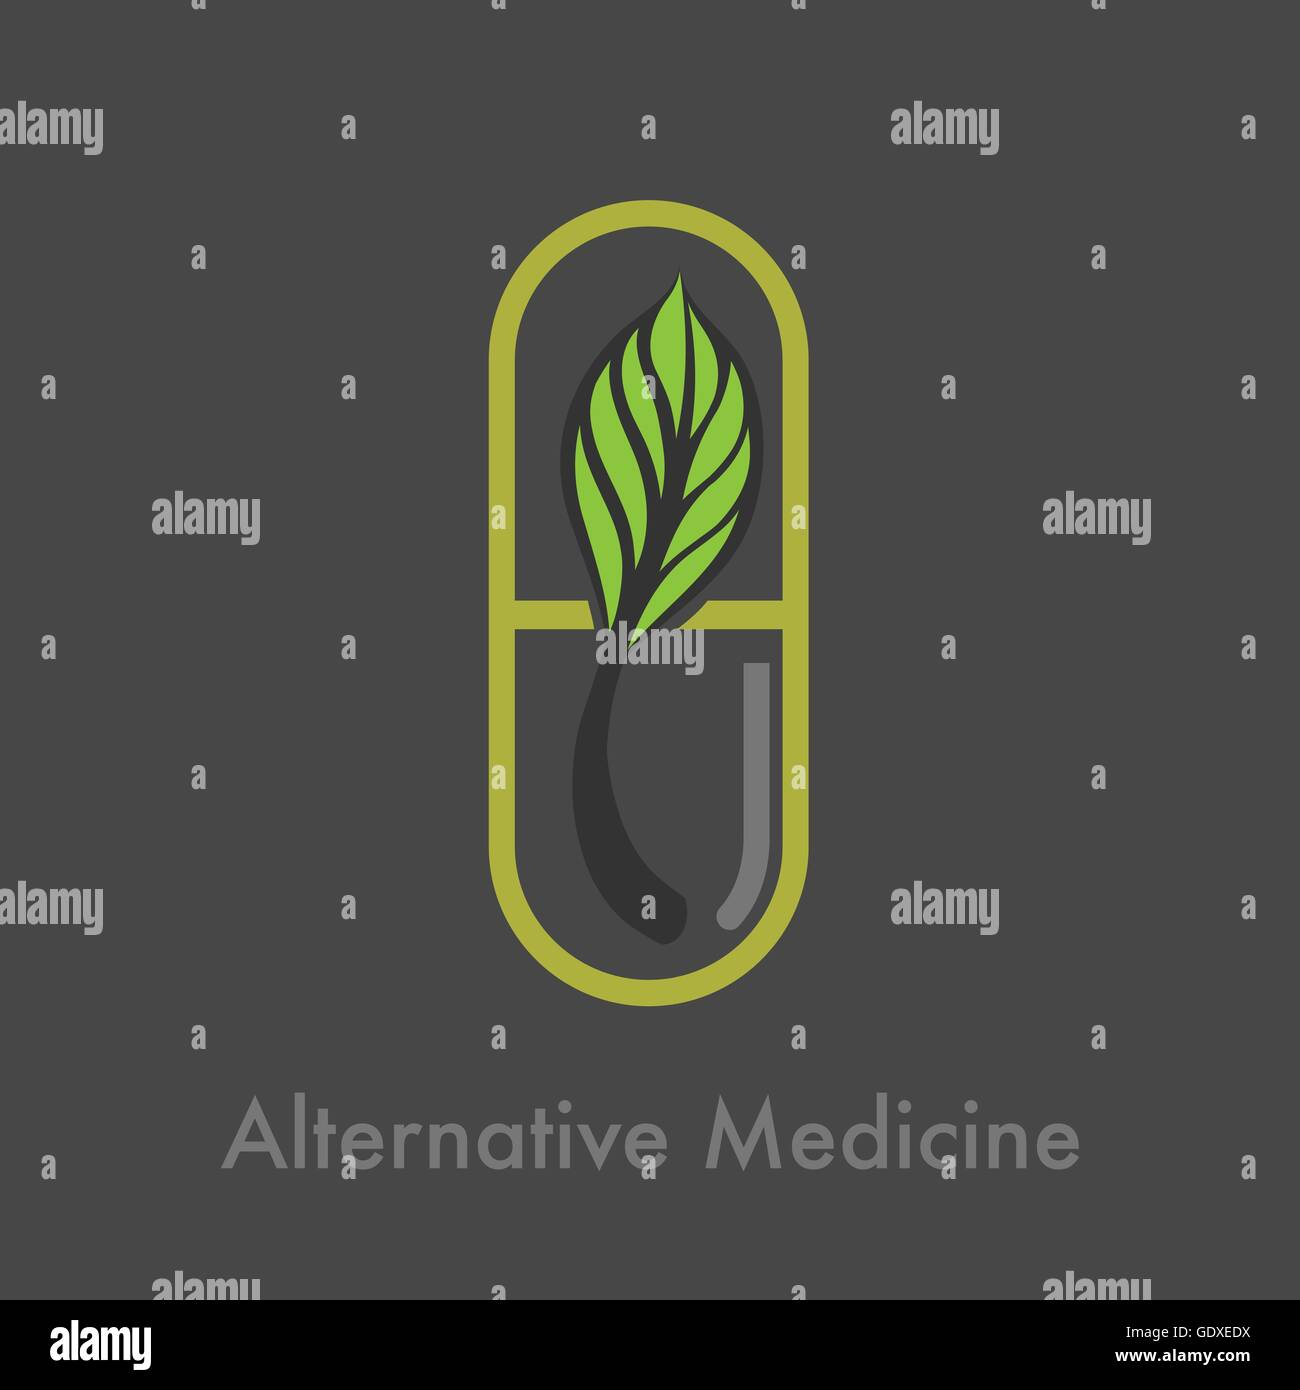 alternative medicine logo vector - Stock Image